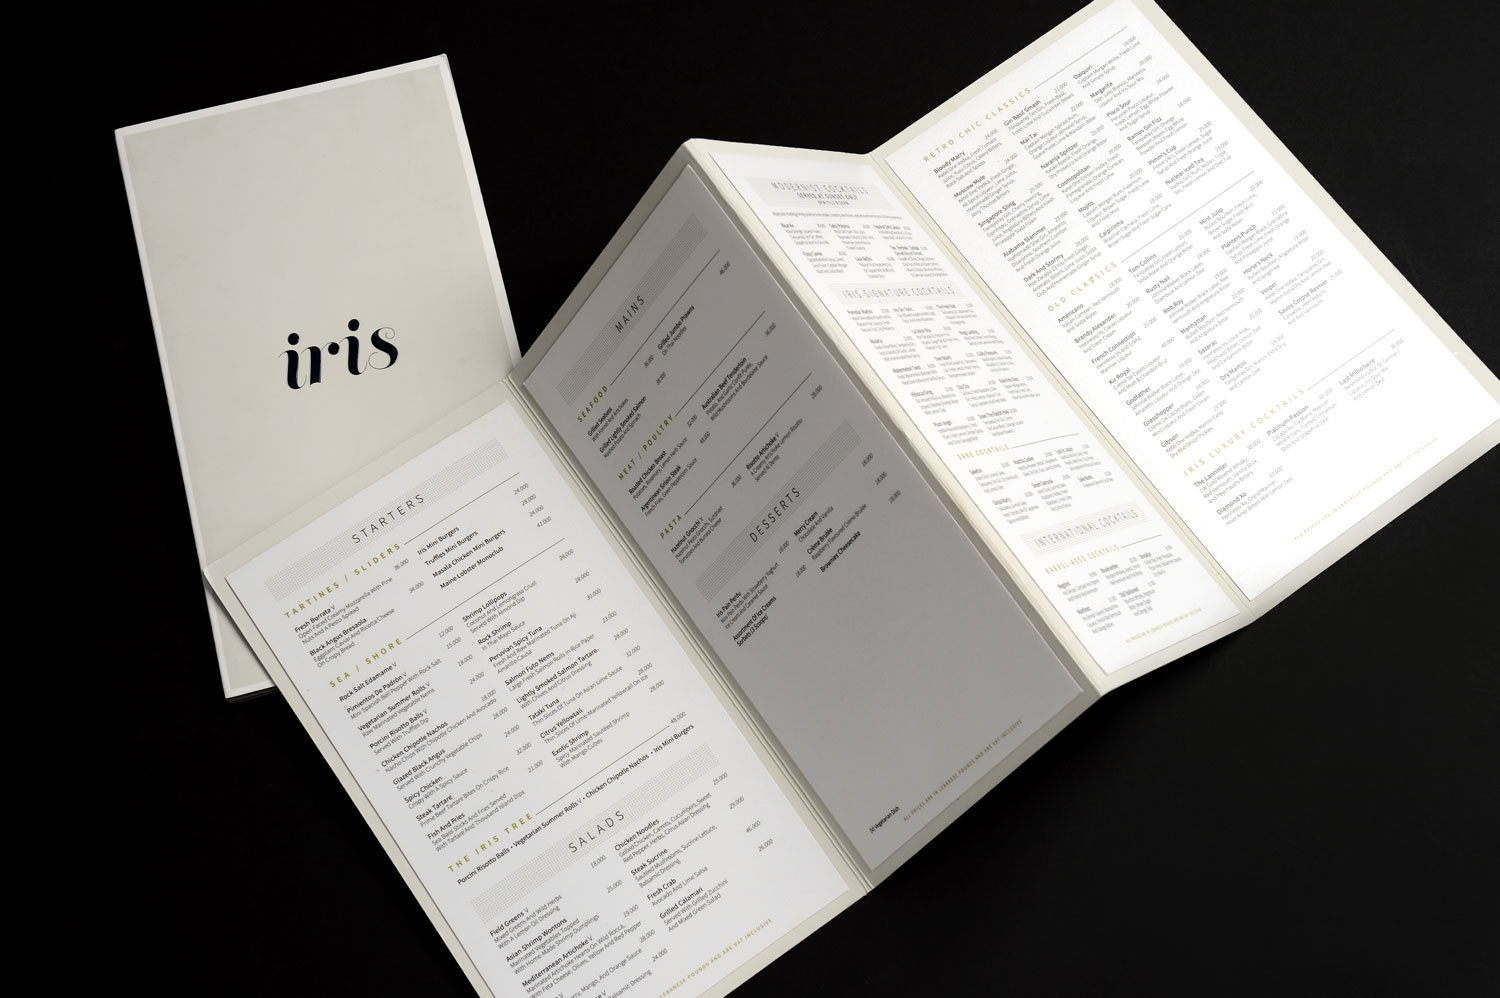 iris Beirut food drink menu